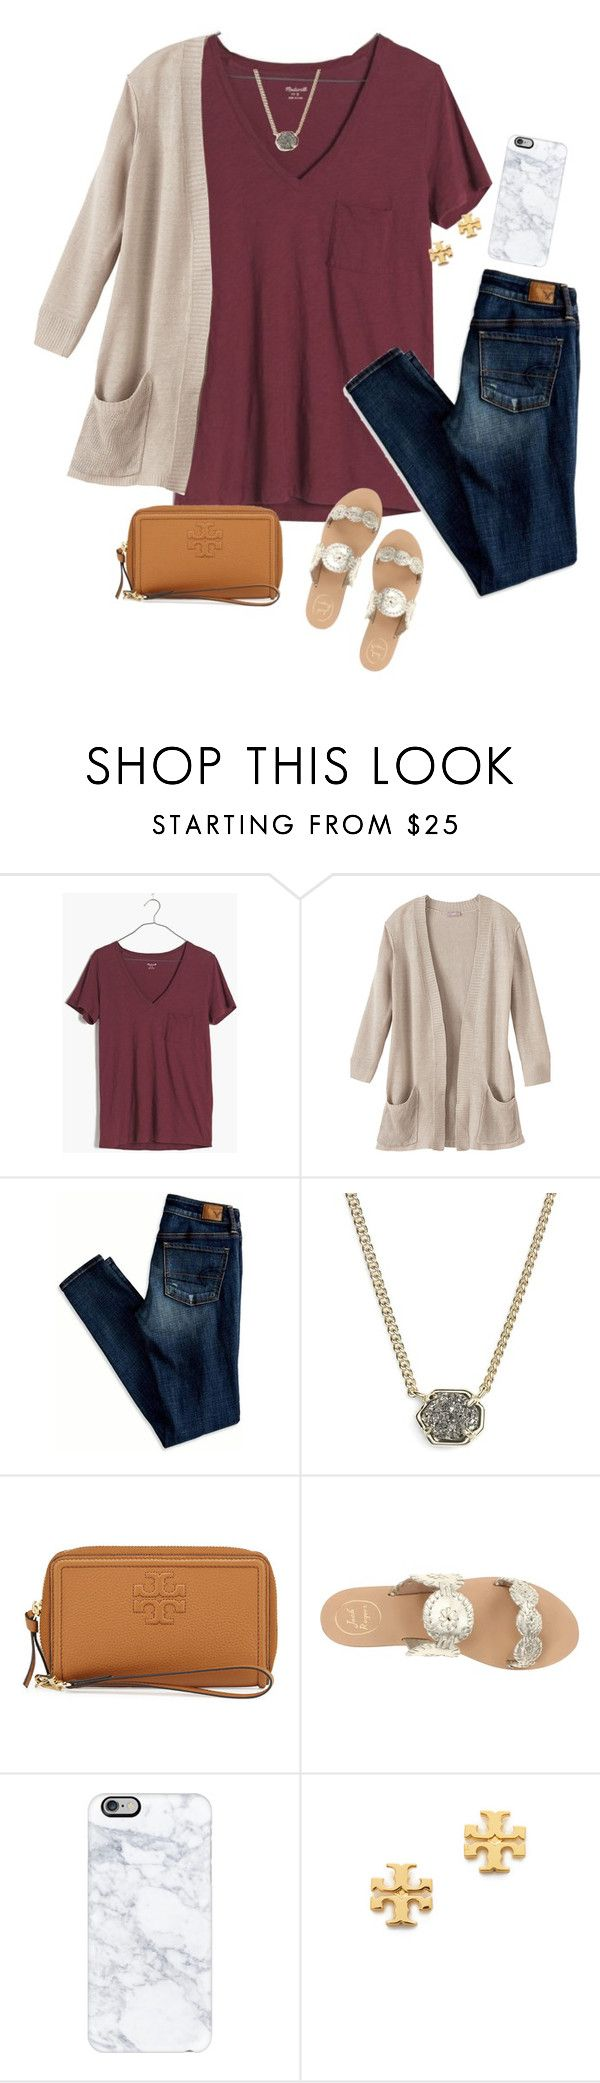 """we all have a story."" by isabella813 ❤ liked on Polyvore featuring Madewell, American Eagle Outfitters, Kendra Scott, Tory Burch, Jack Rogers and Casetify"